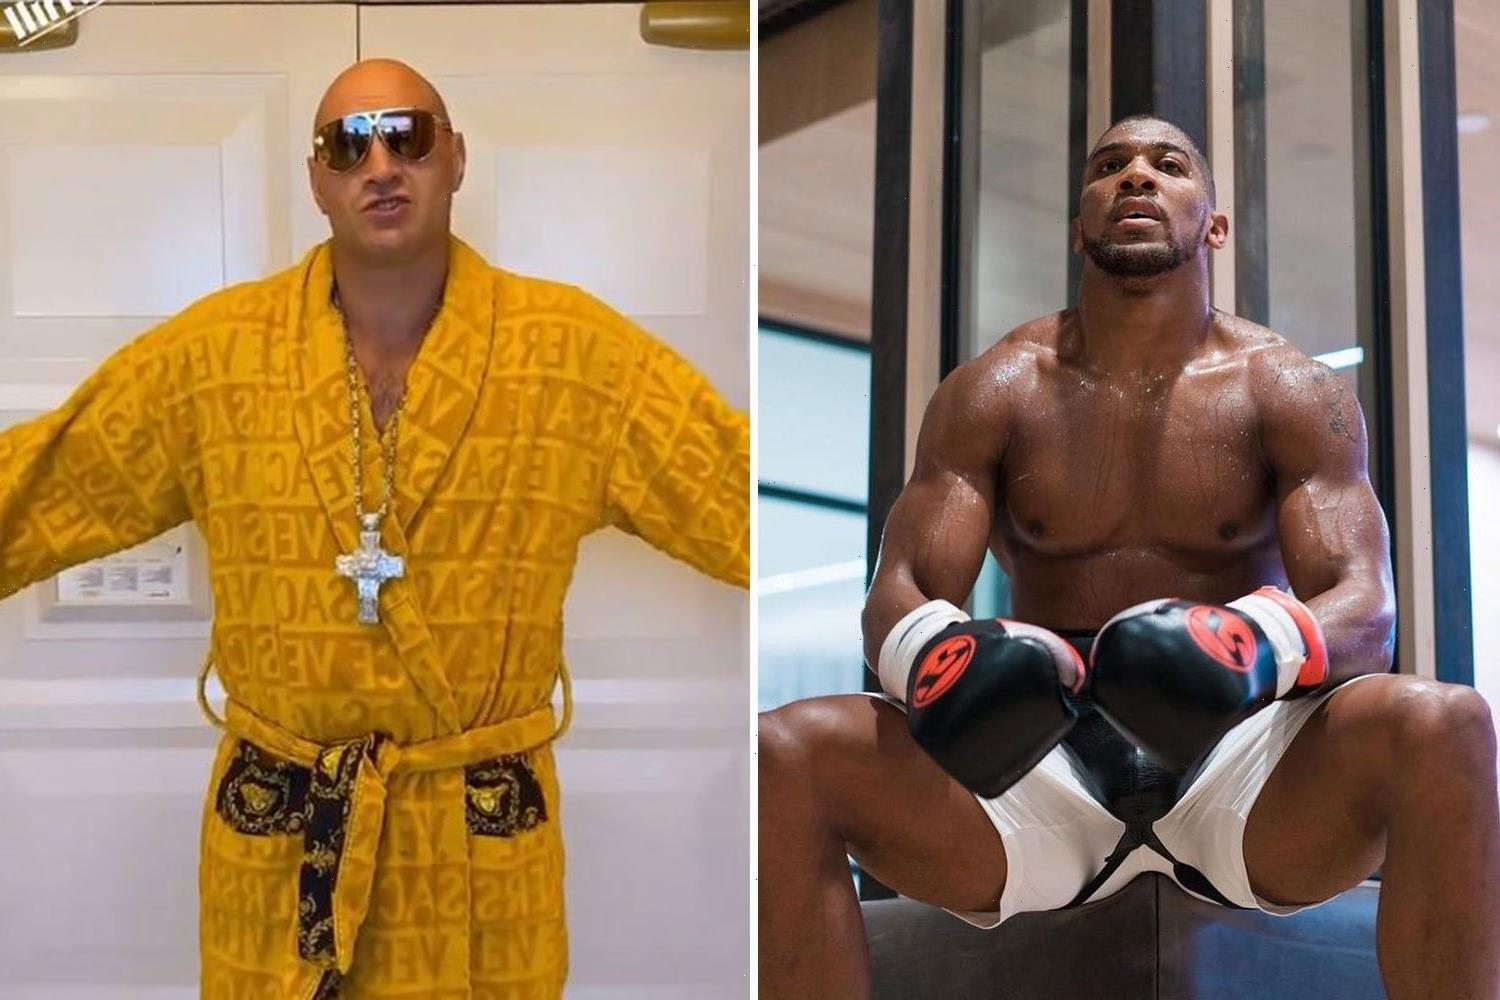 Anthony Joshua looks ripped and shows off bulking abs while branding himself 'cold blooded' ahead of Tyson Fury fight